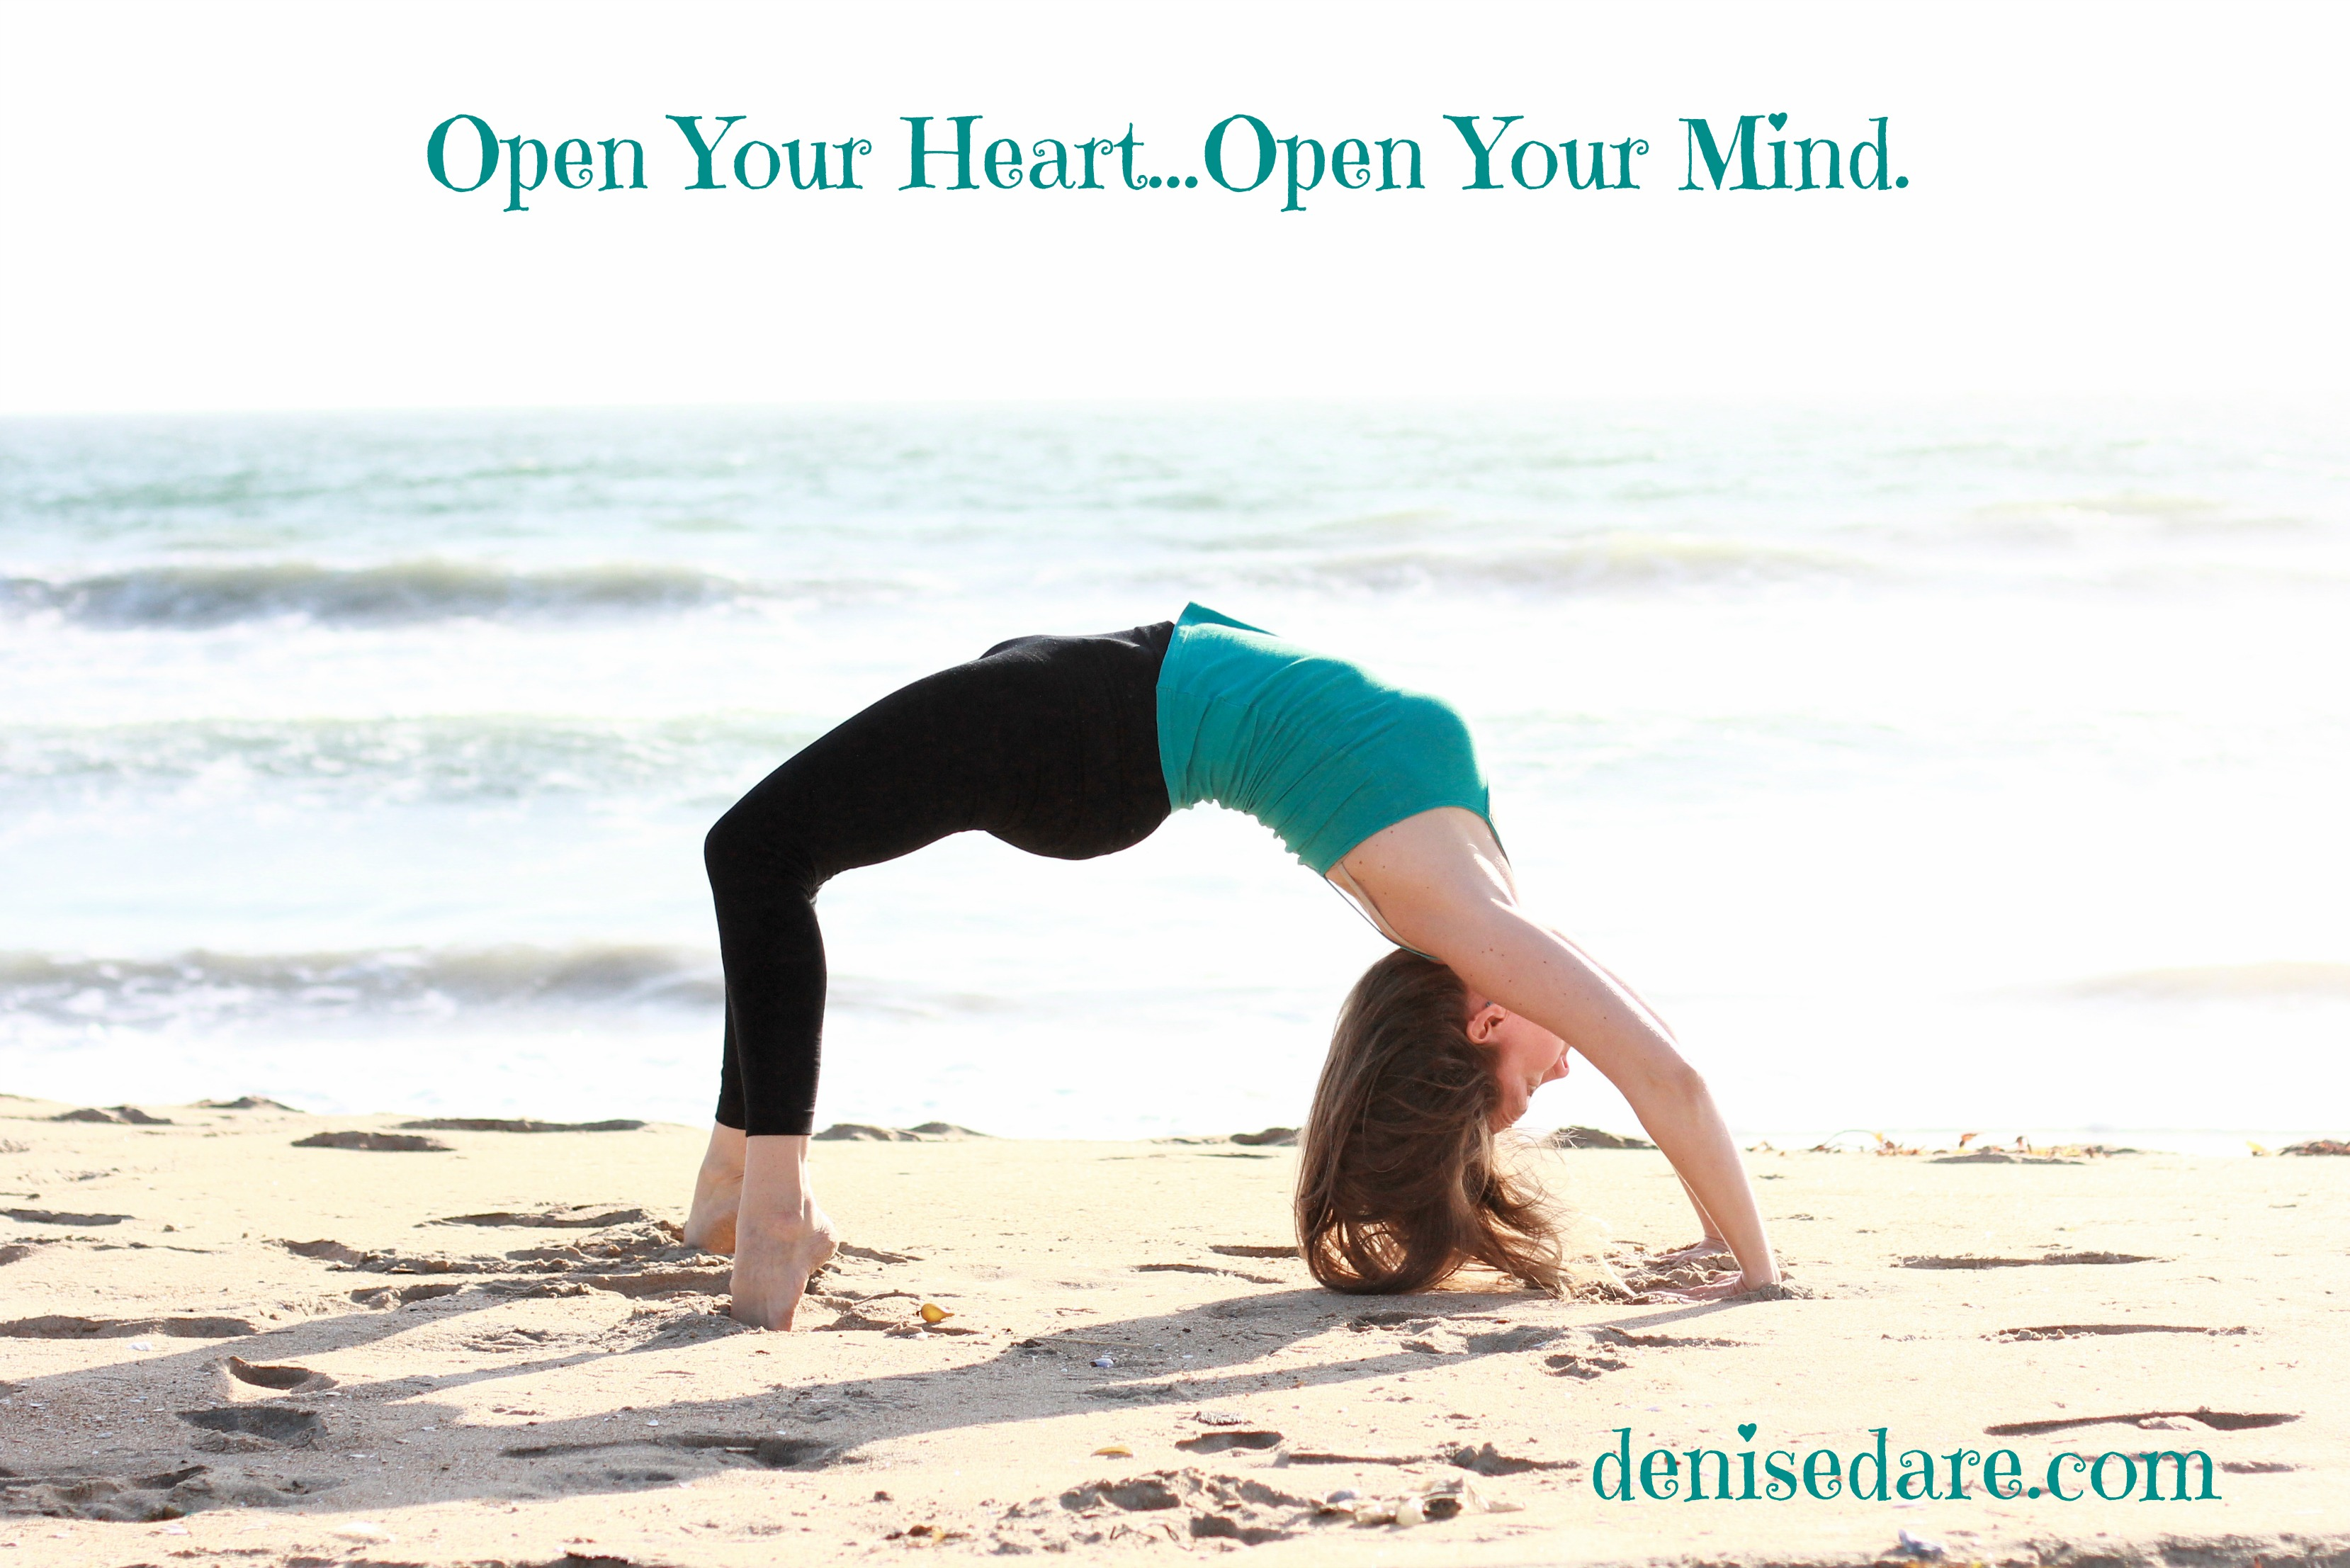 open heart open mind essay Mind is open when heart is open essays could thought control, as in moving things or turning things on with your mind, be in the near future actually the technology necessary is here now.